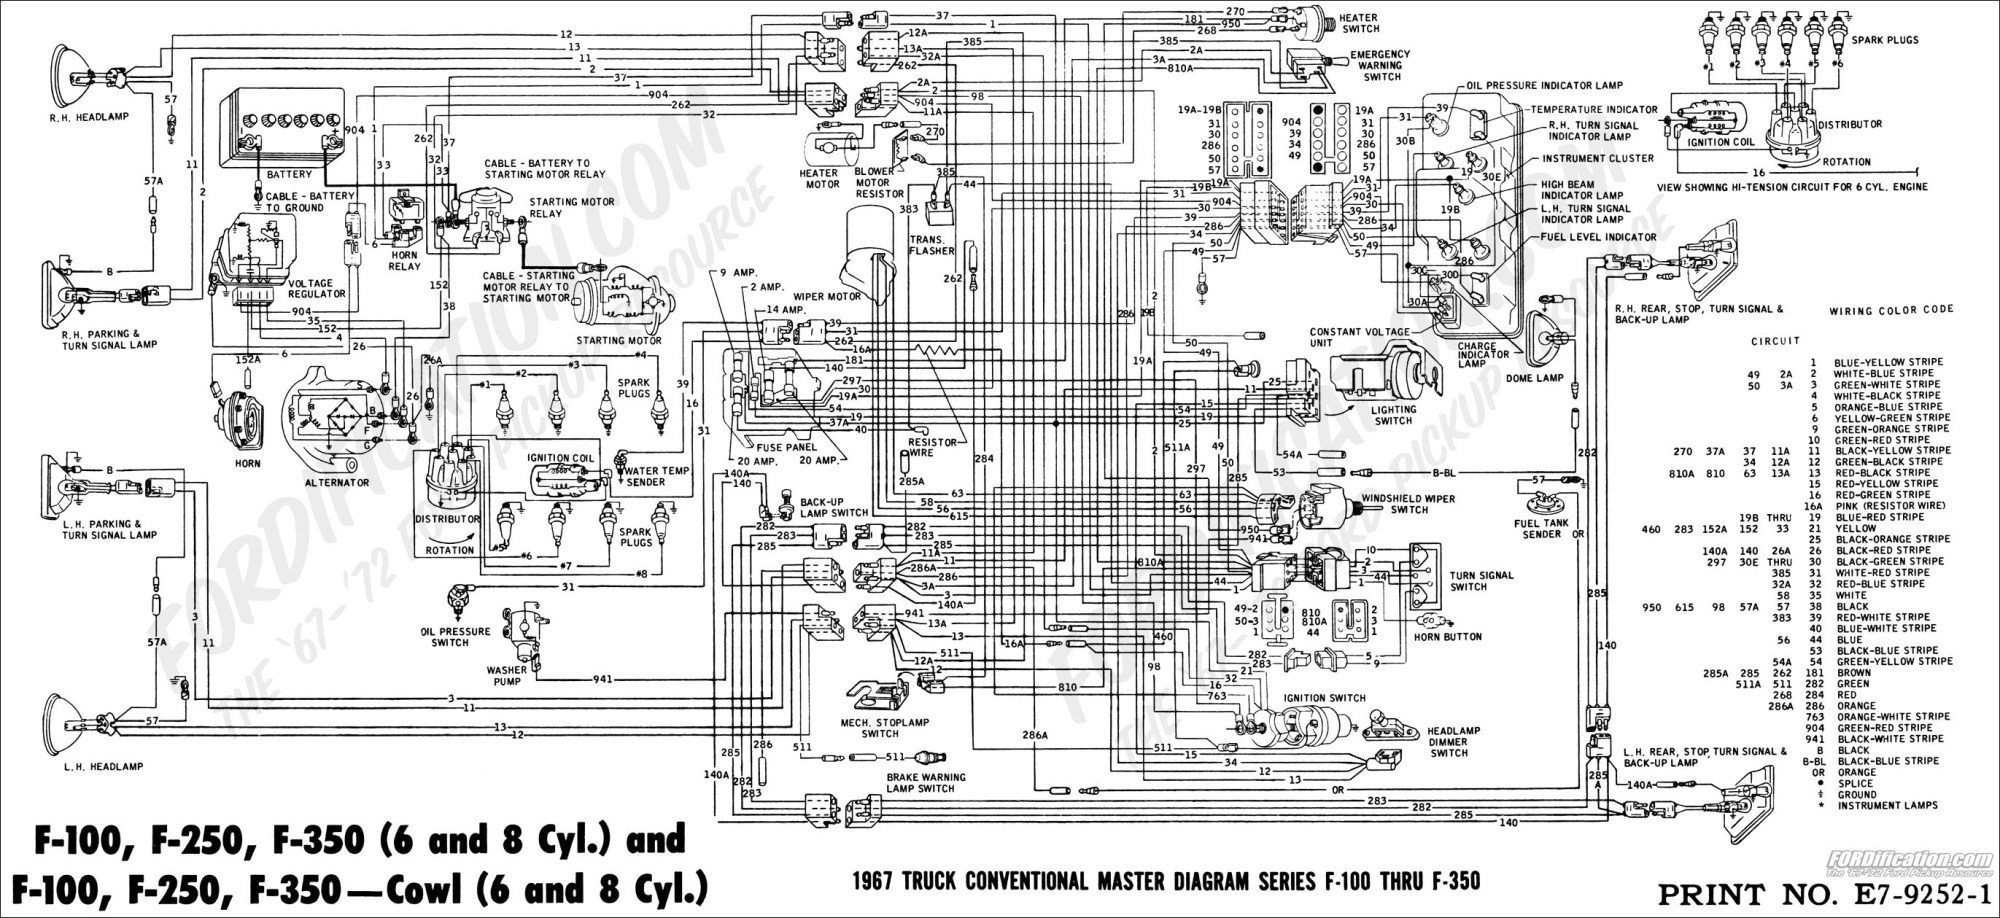 hight resolution of 2007 ford e350 wiring diagram simple wiring schema ford econoline e350 blower wiring schematic 1990 e350 wiring diagram